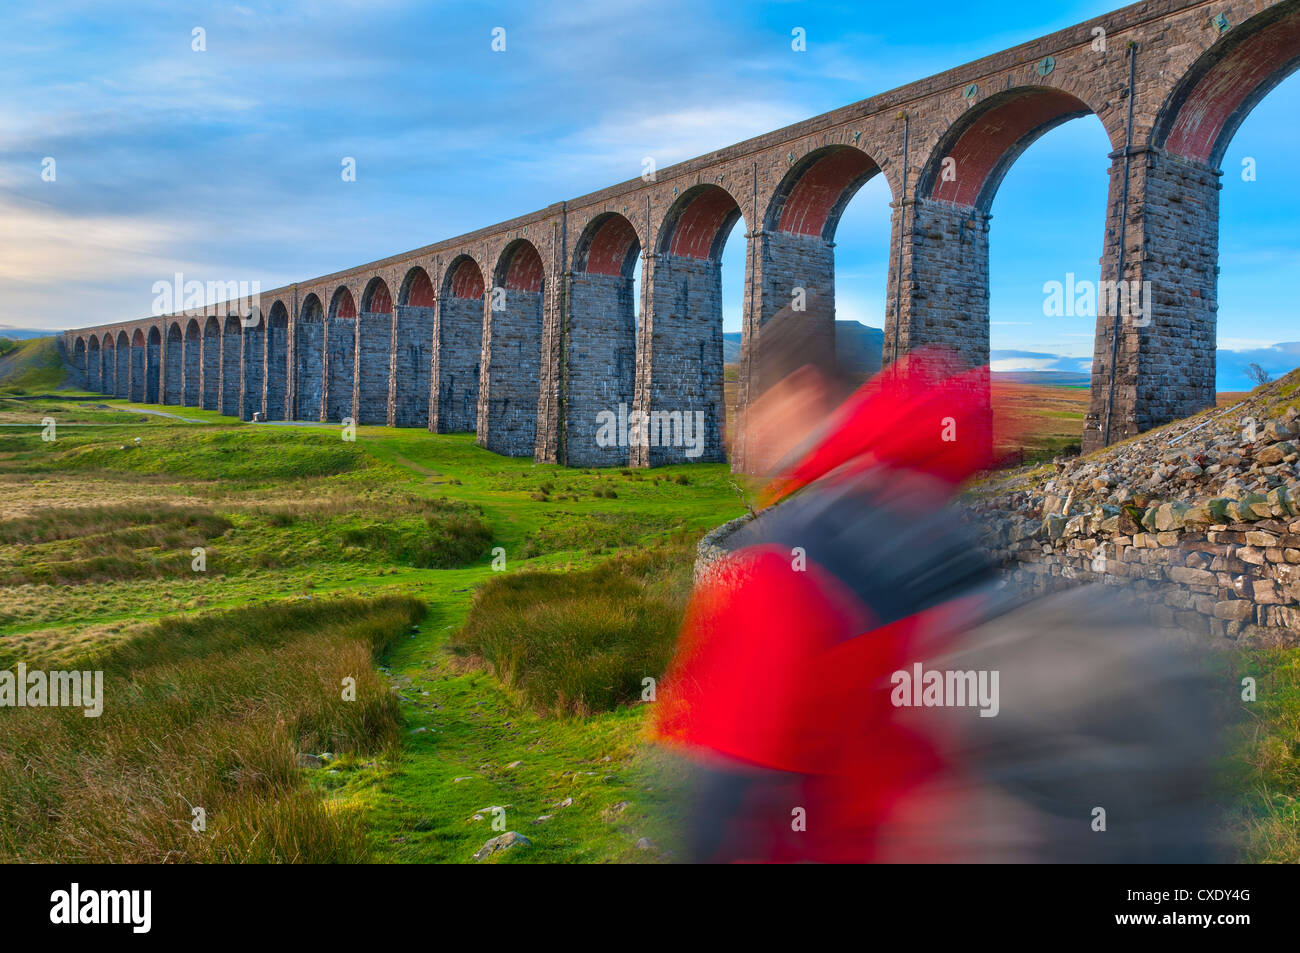 Pen-y-ghent and Ribblehead Viaduct on Settle to Carlisle Railway, Yorkshire Dales National Park, North Yorkshire, - Stock Image